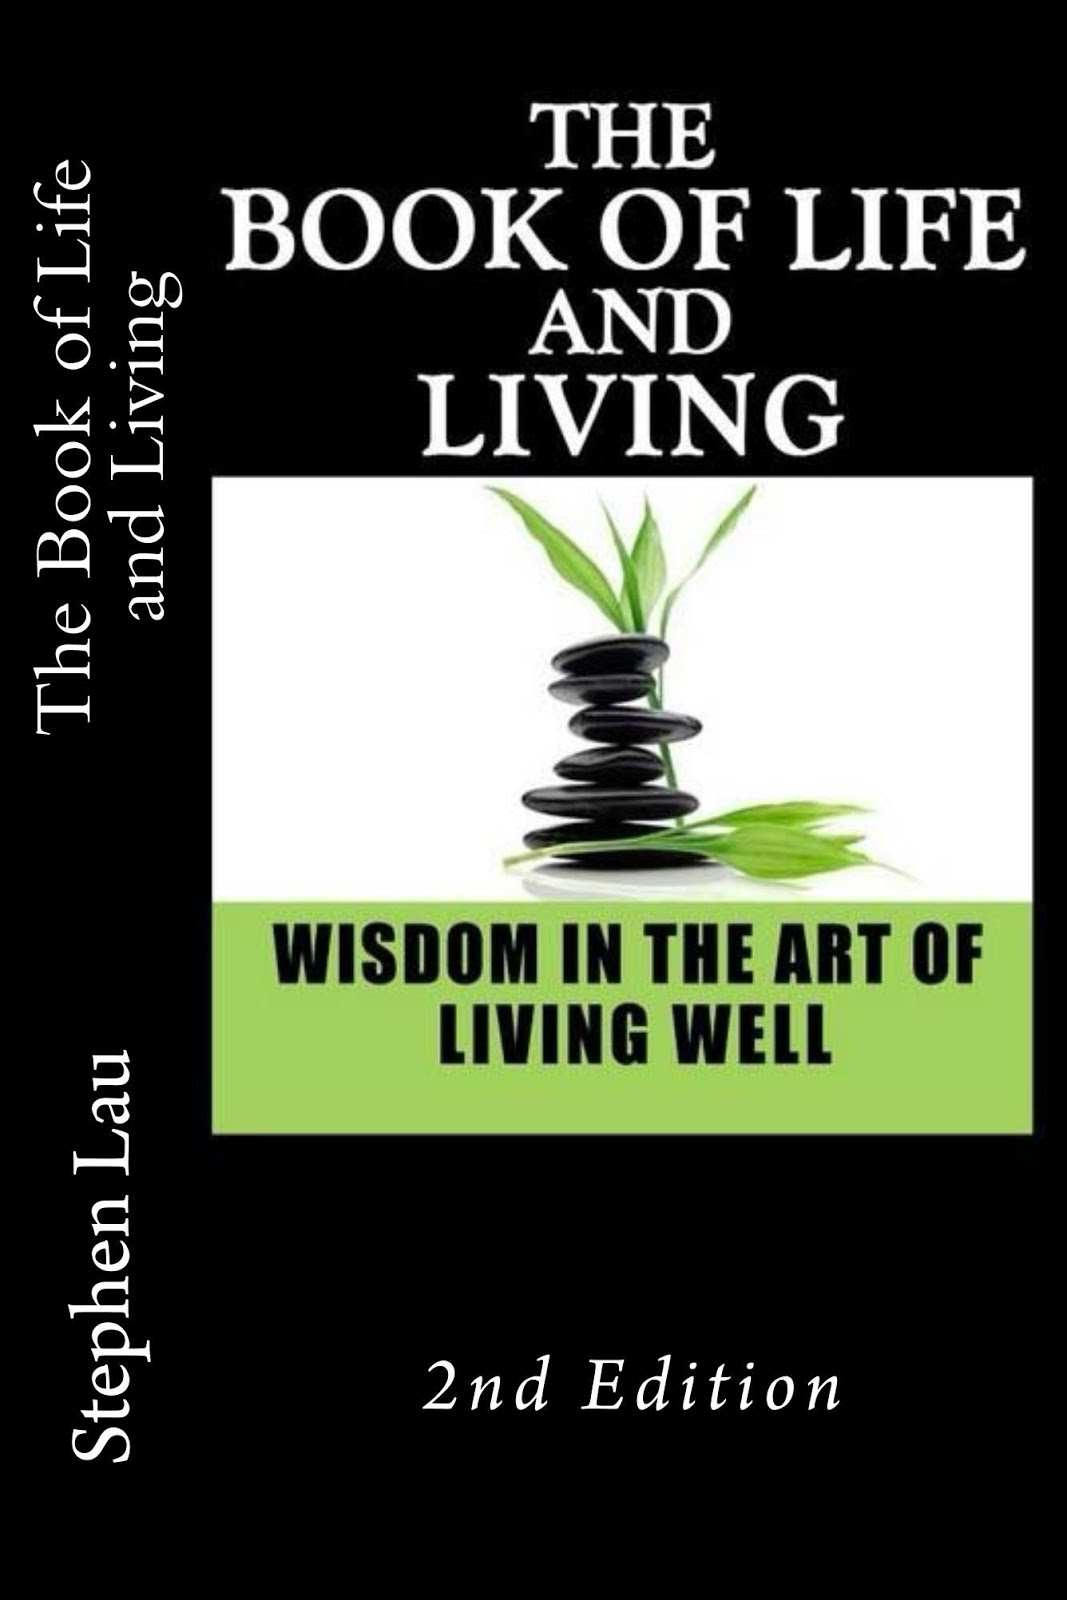 <b>The Book of Life and Living</b>